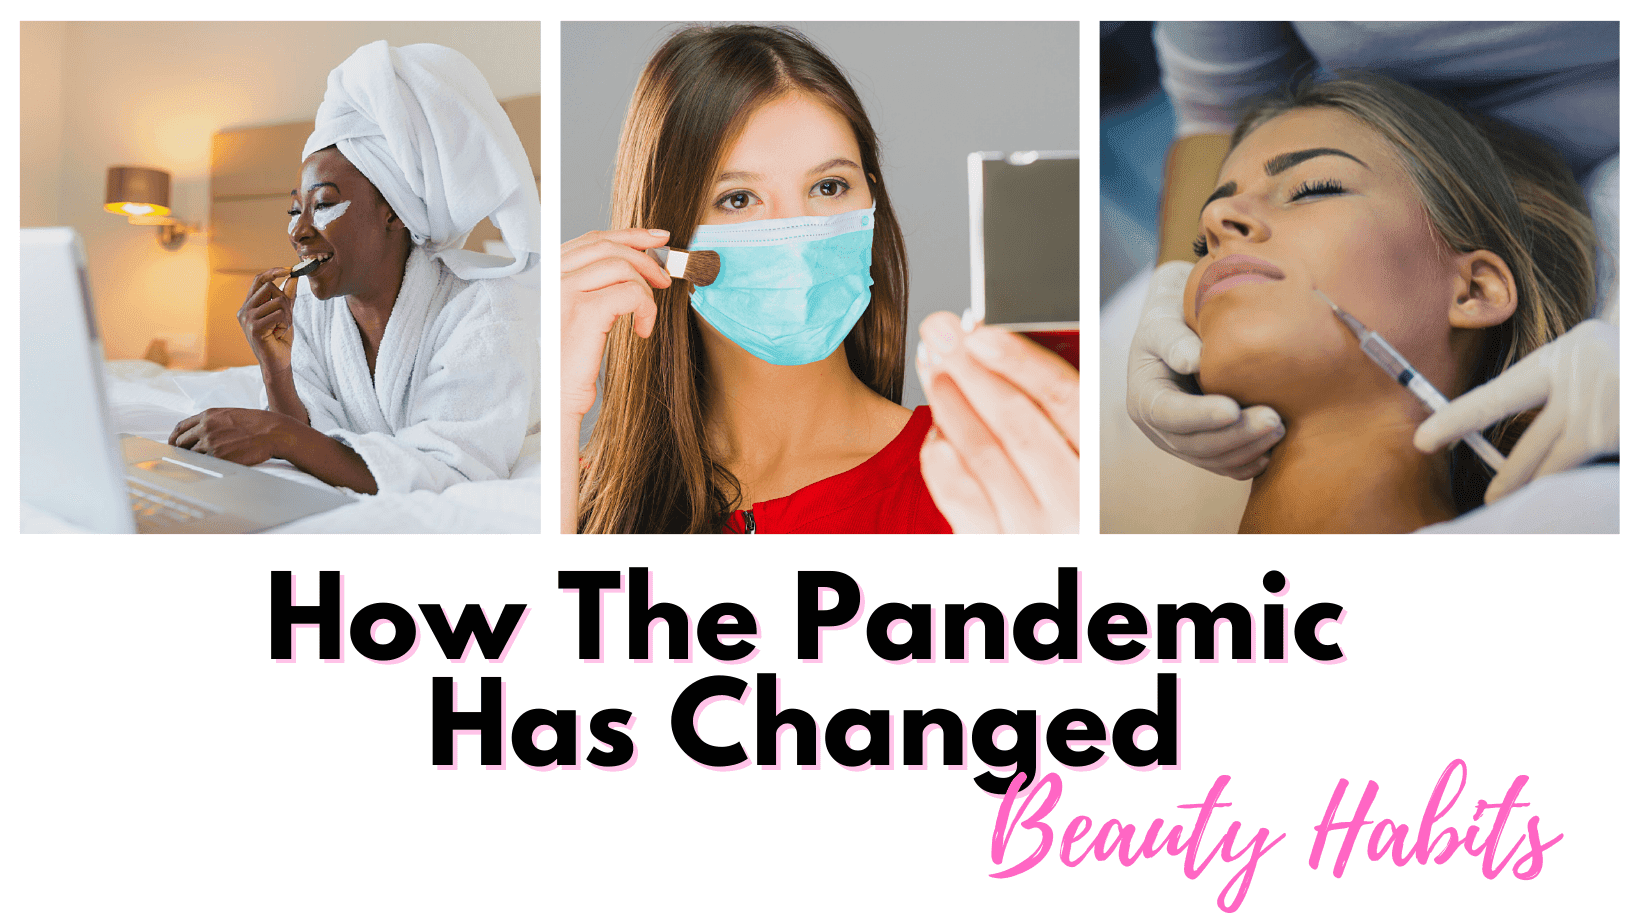 How The Pandemic Has Changed Beauty Habits By Barbies Beauty Bits